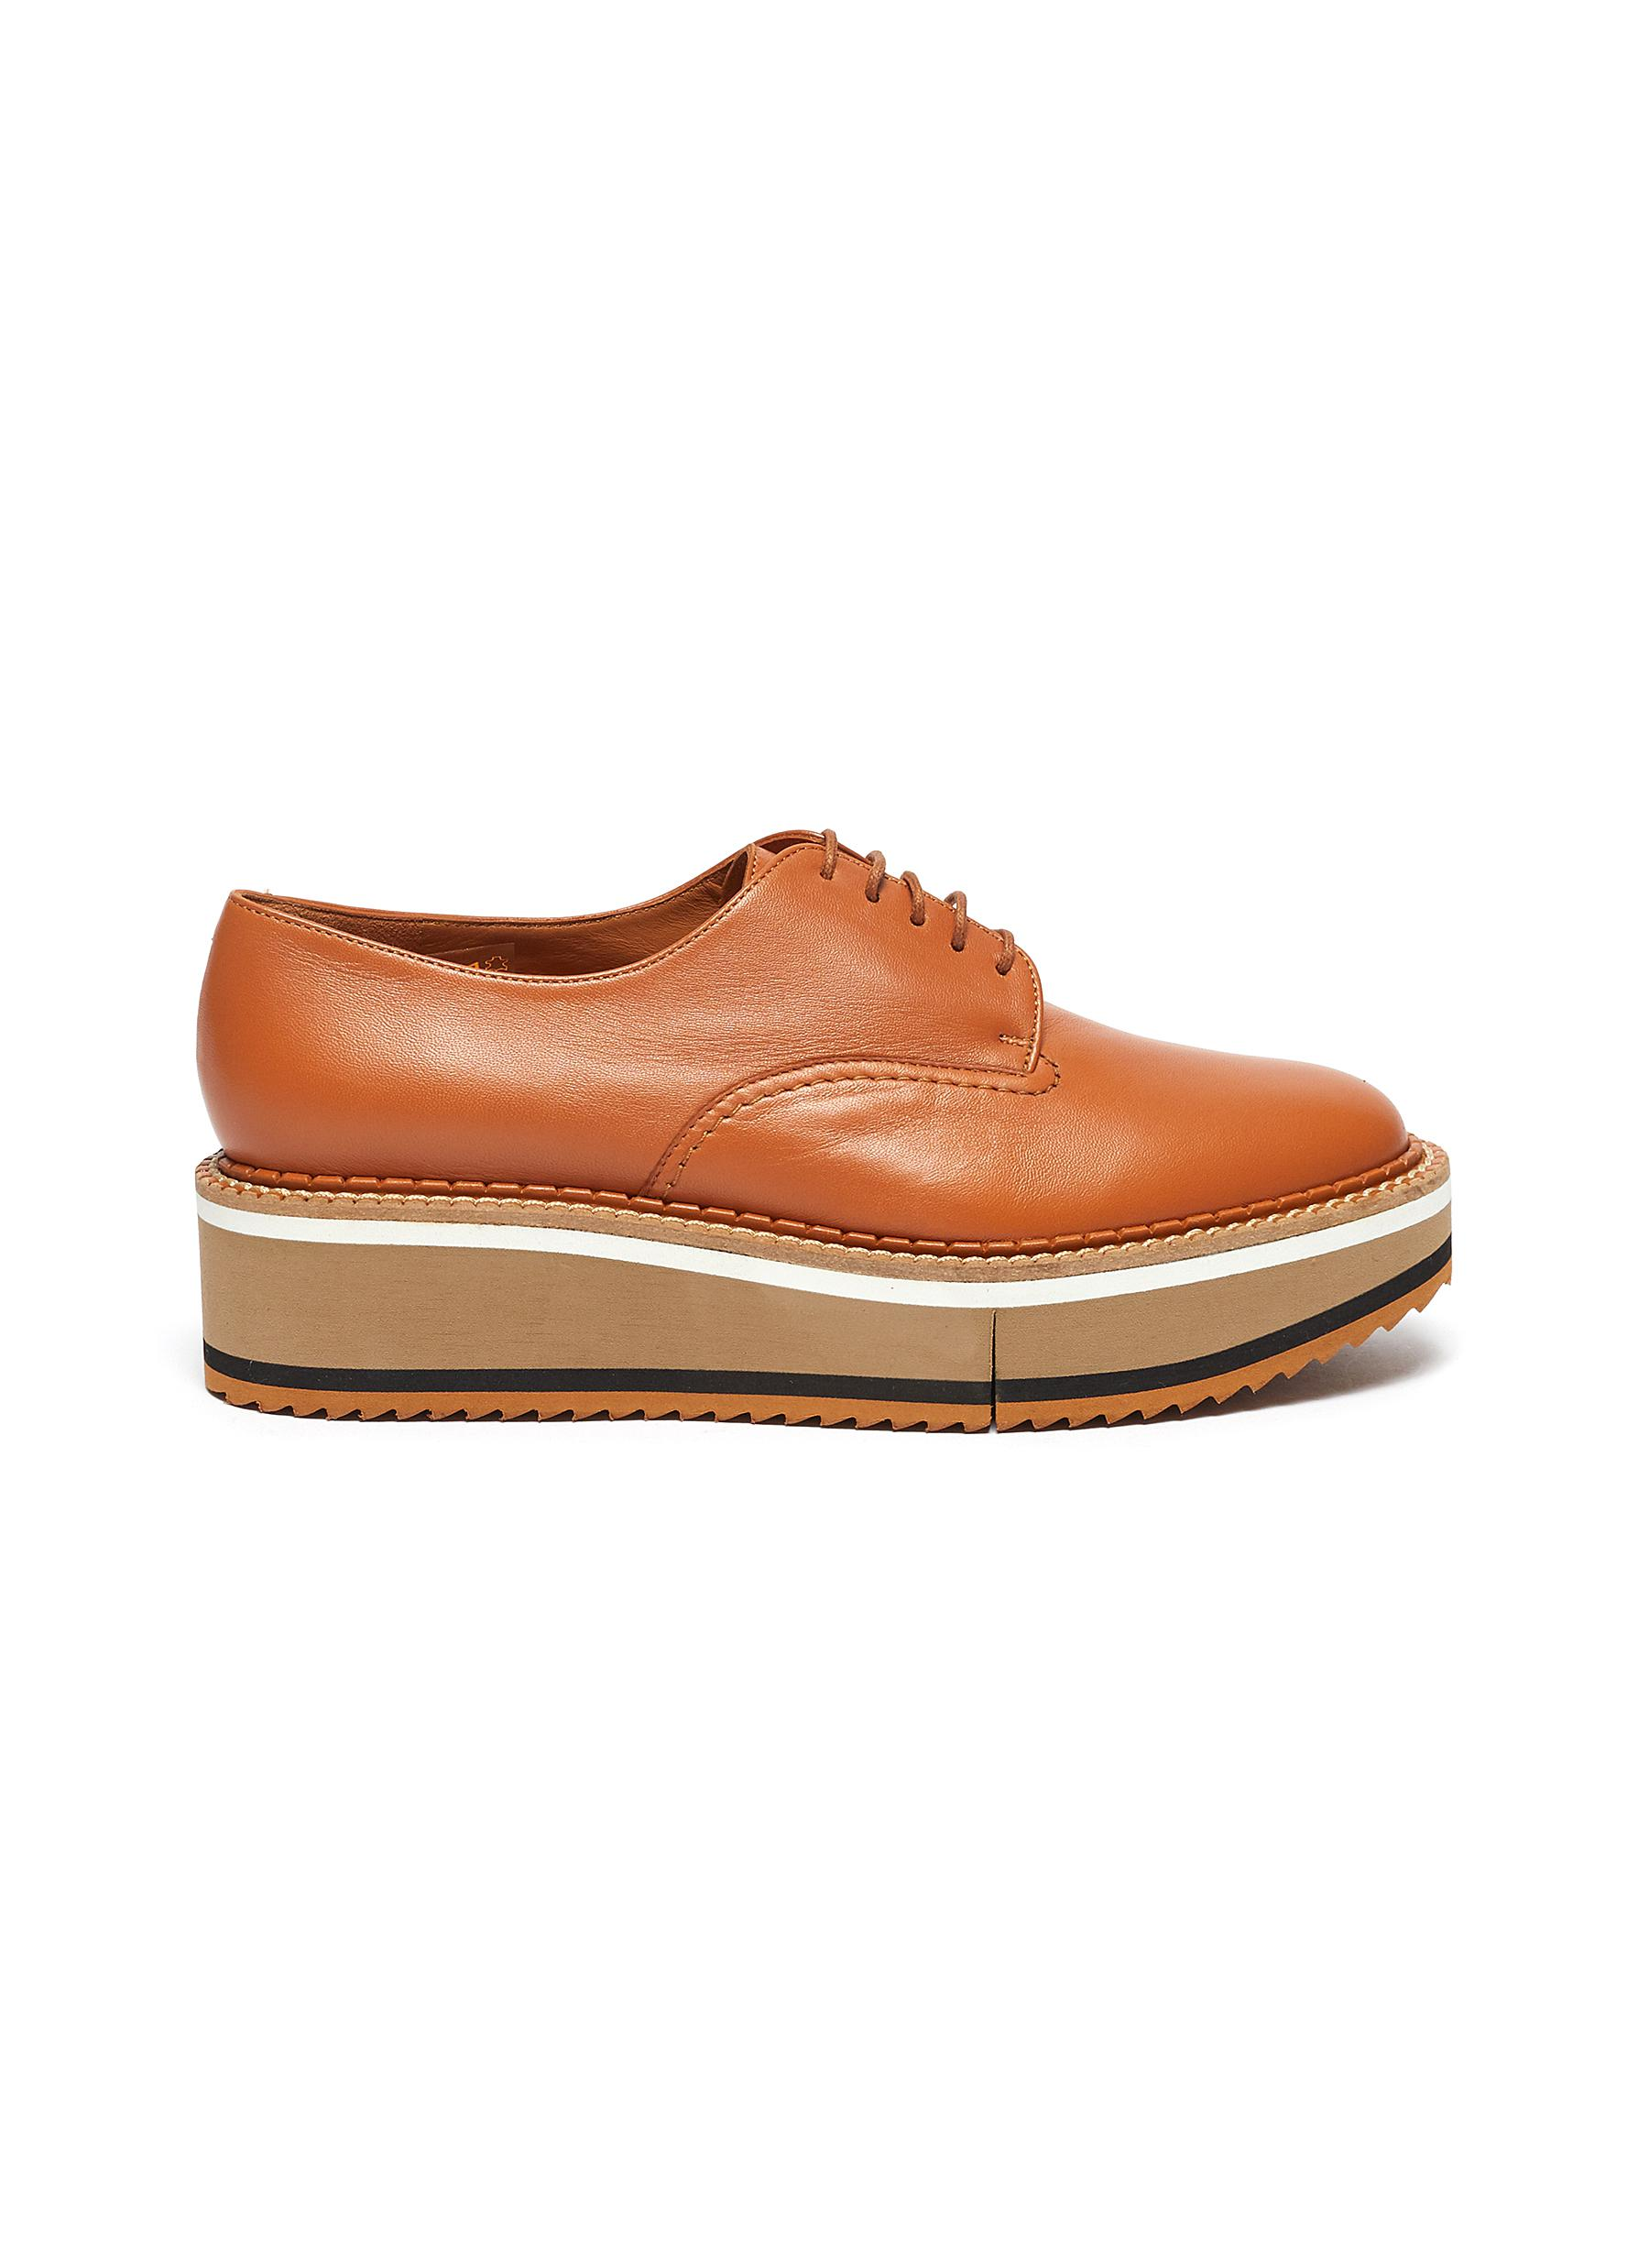 Clergerie Flats Berlin lace up flatform loafers